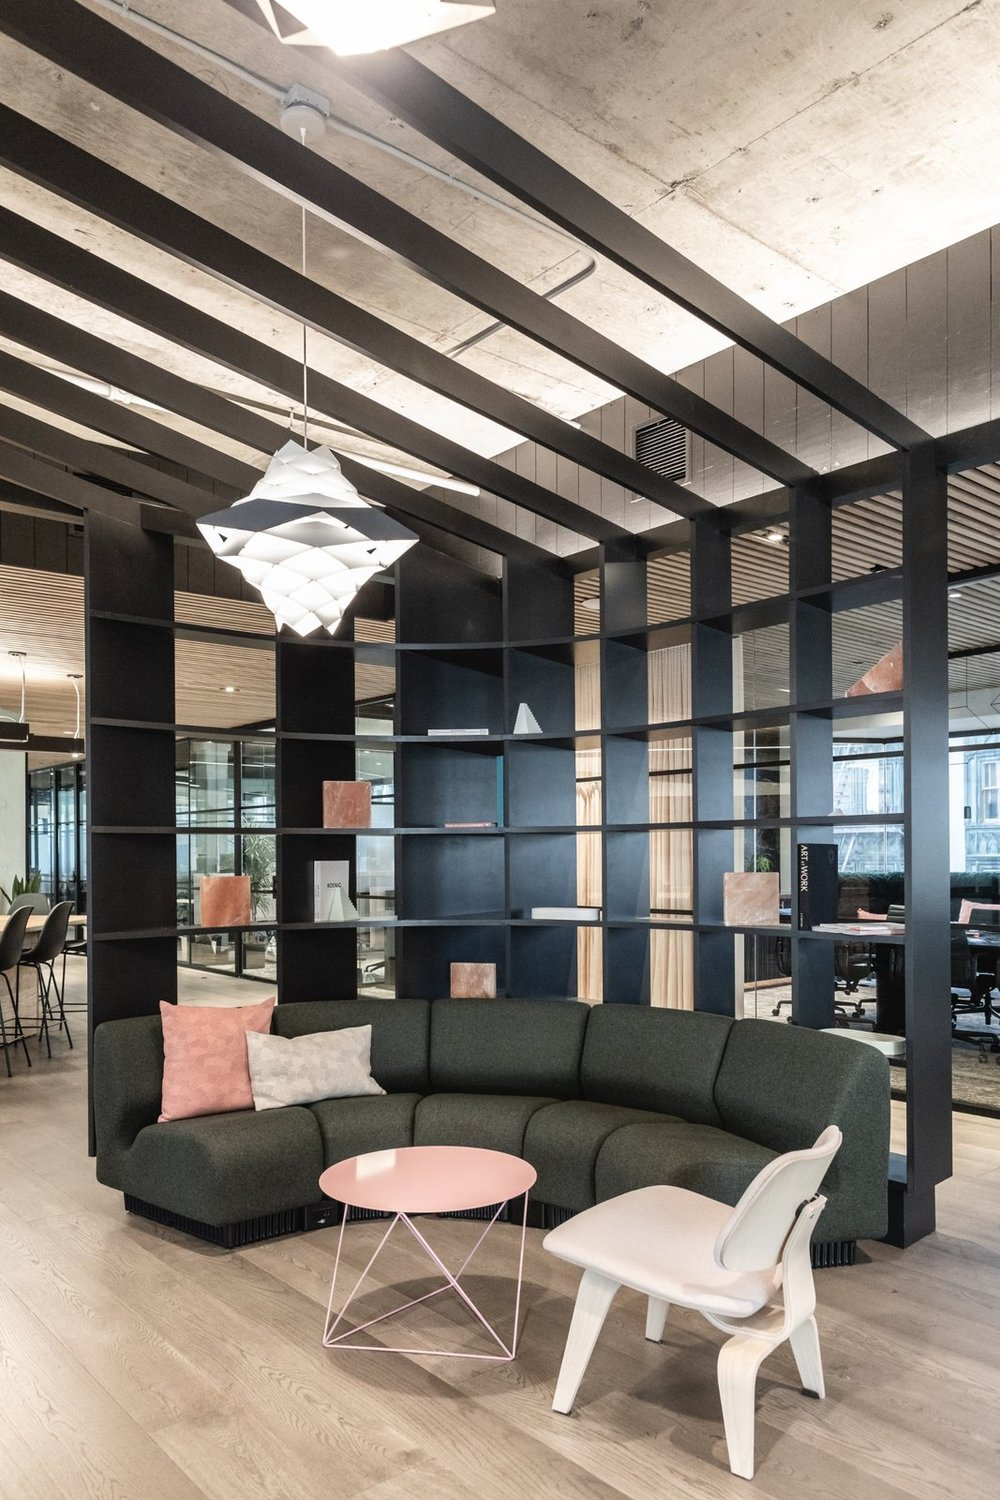 A literal canopy wraps around the the lounge serving as a shelf and barrier between the conference and work areas. (Sothear Nuon)